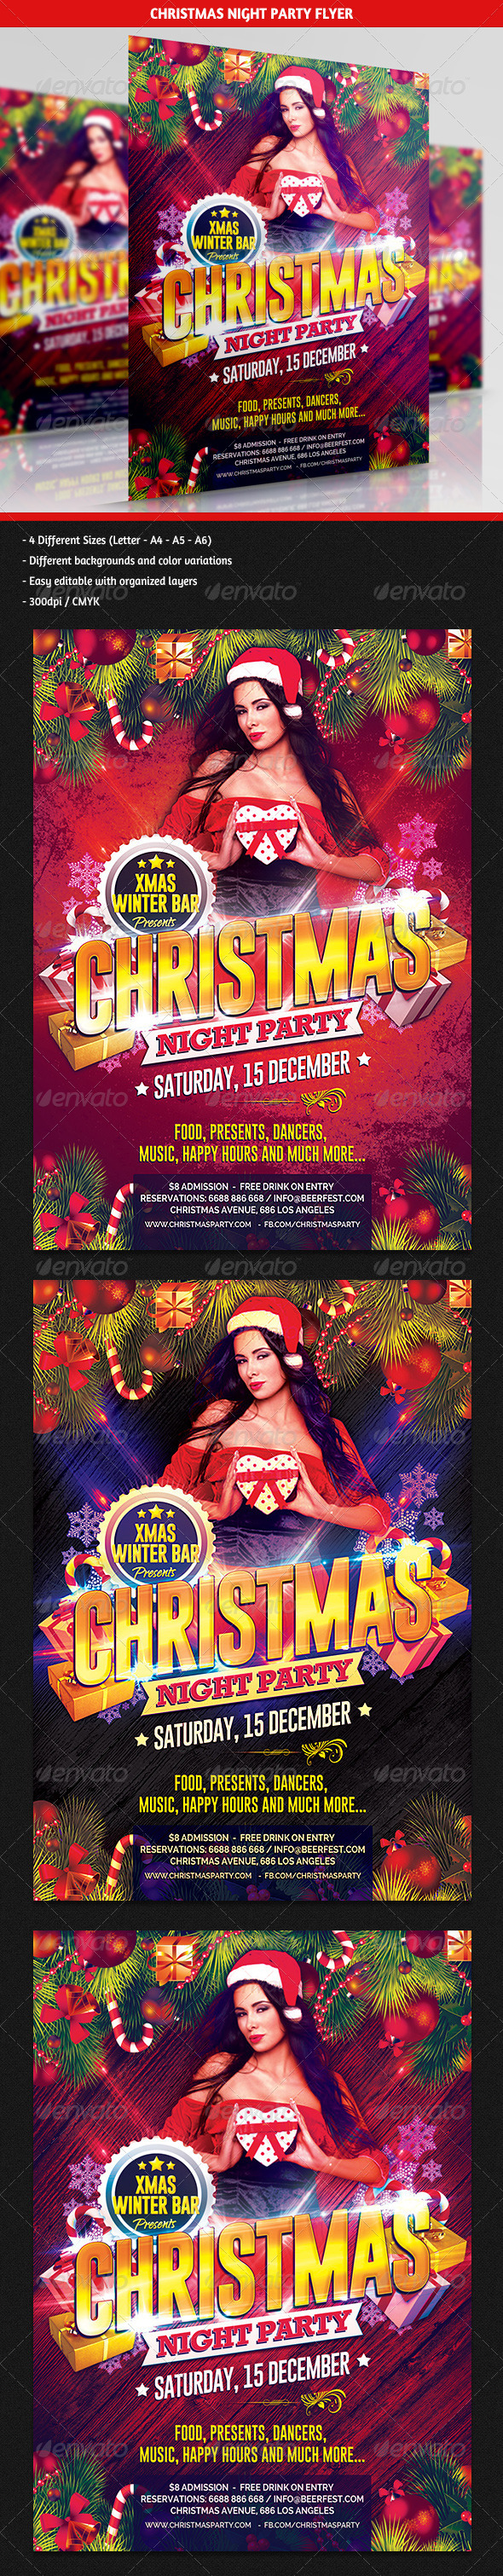 GraphicRiver Christmas Night Party Flyer 6319744